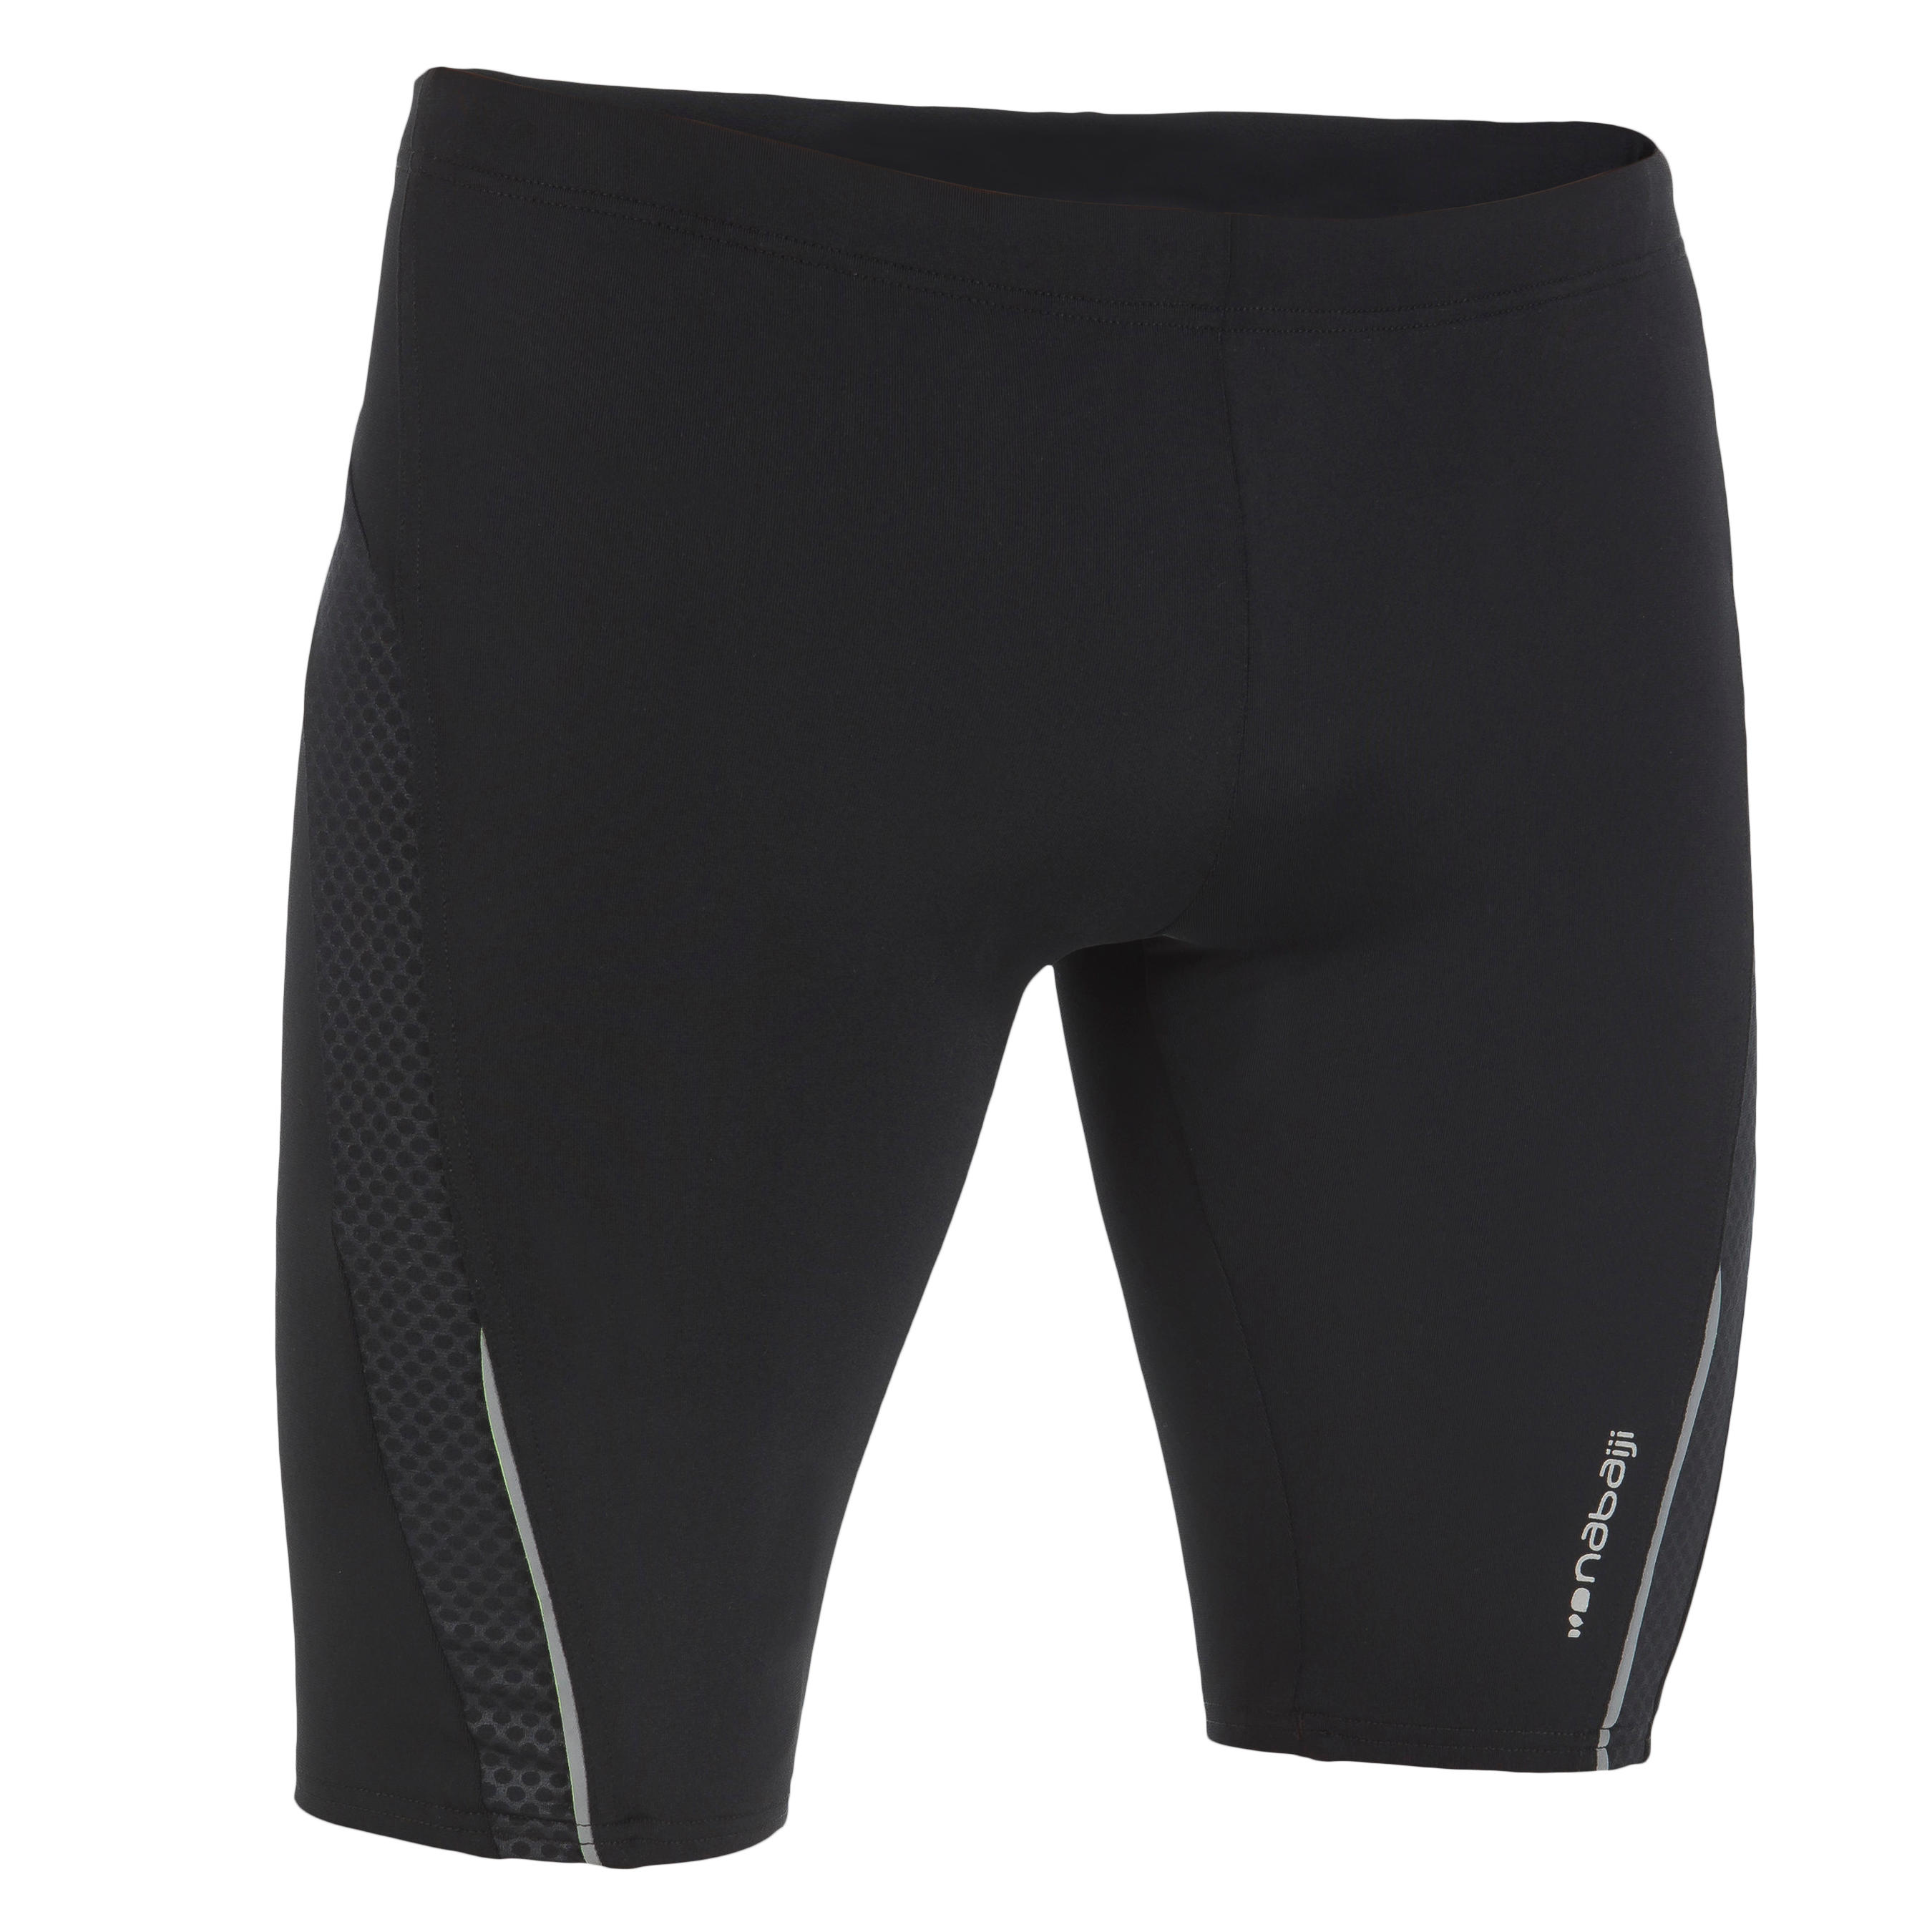 B-First Men's Jammer Swim Shorts - Black Dot